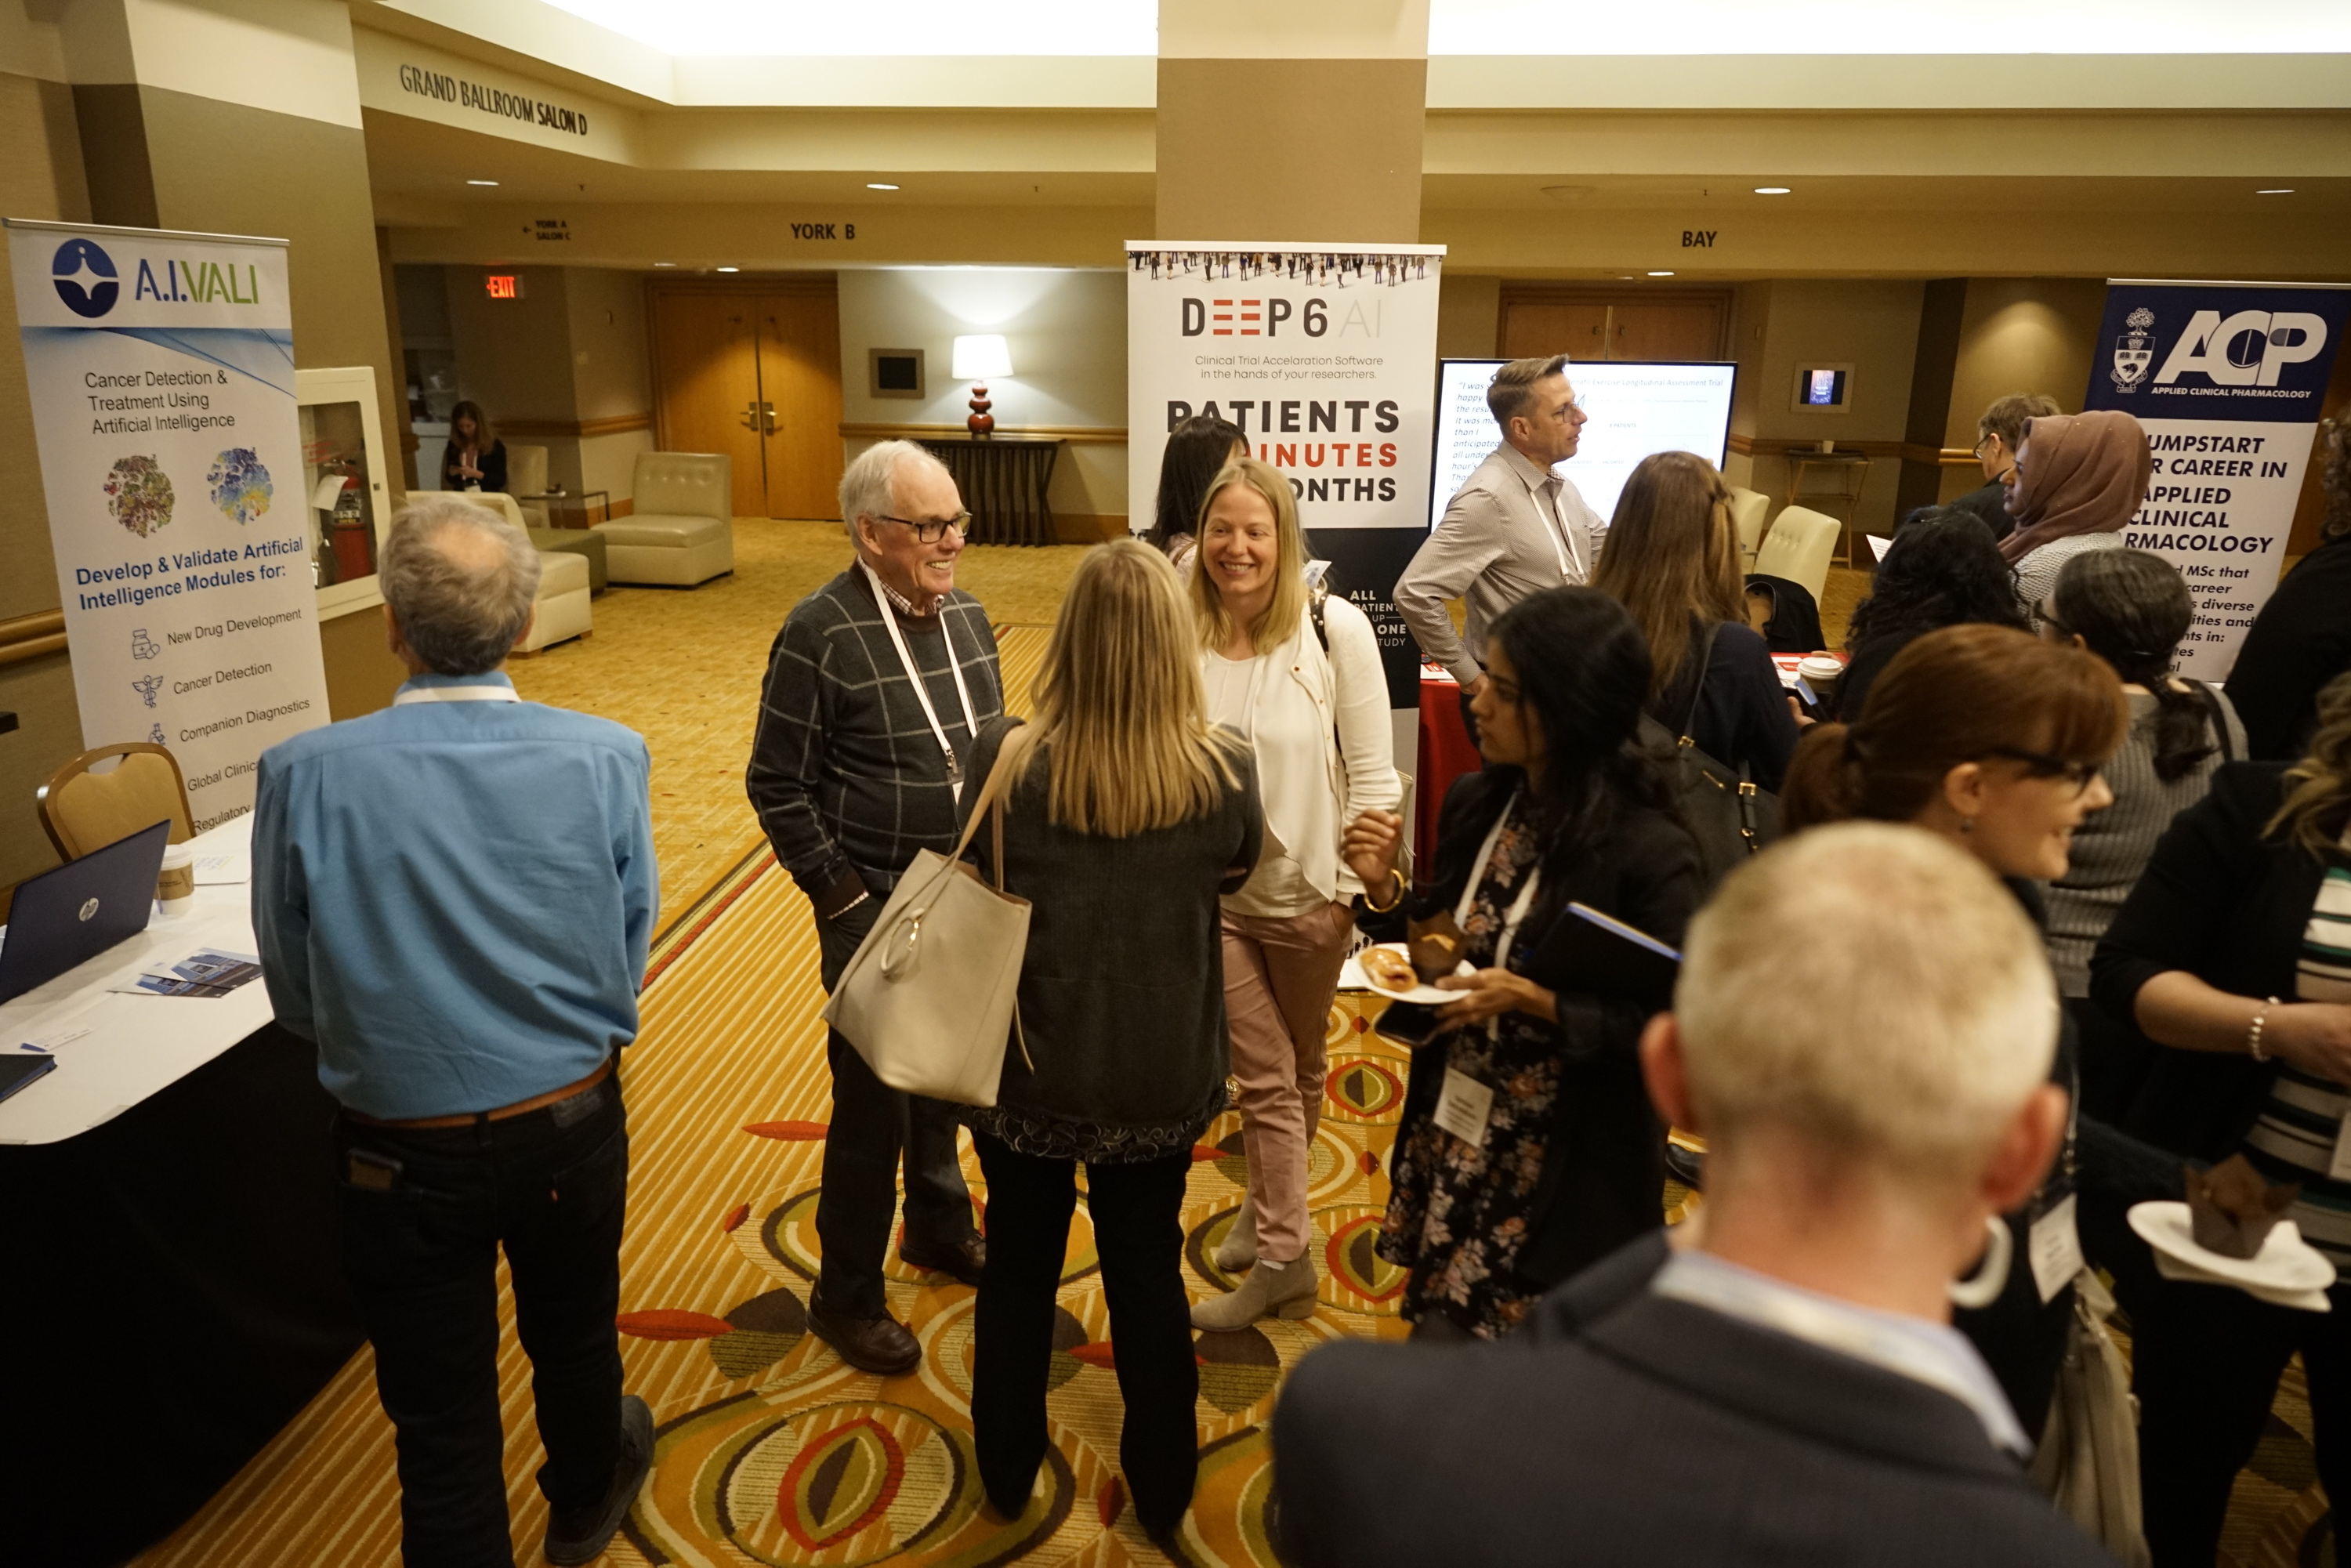 Innovation Showcase brings glimpses of future trends to CTO conference